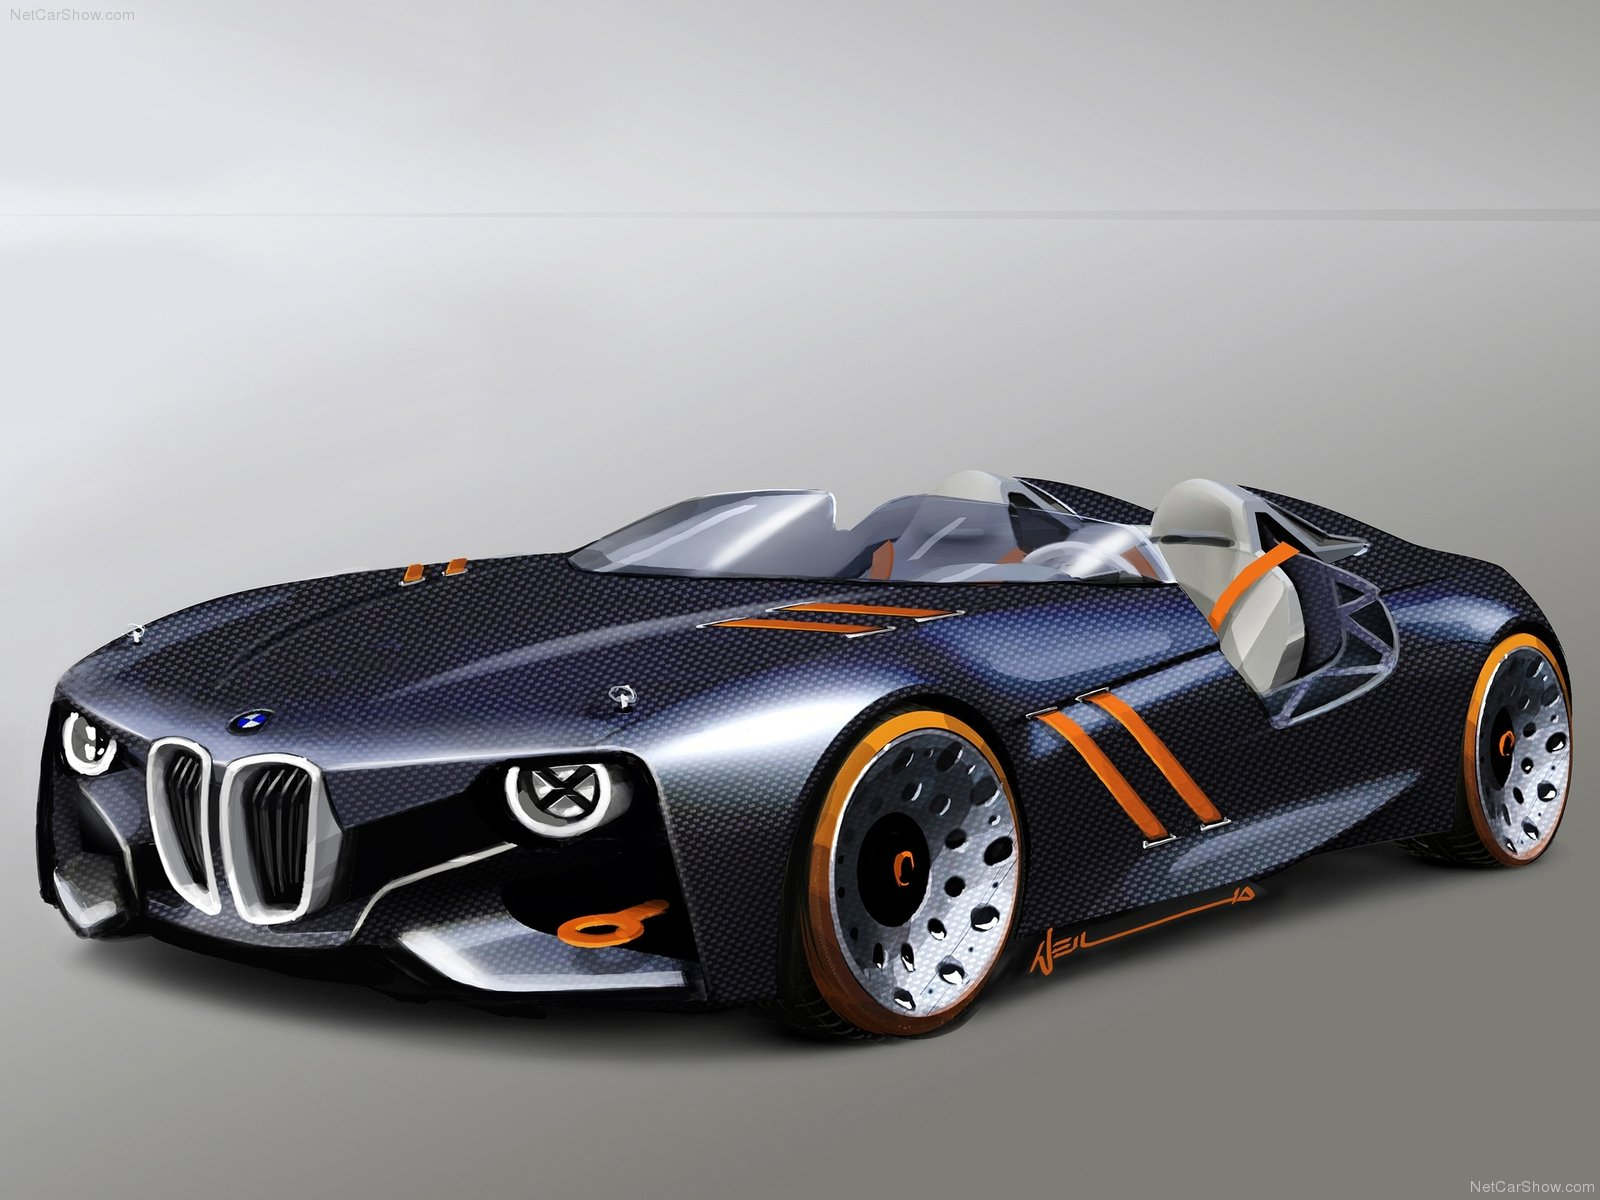 Future Of The Car: FAB WHEELS DIGEST (F.W.D.): 2011 BMW 328 Hommage Concept